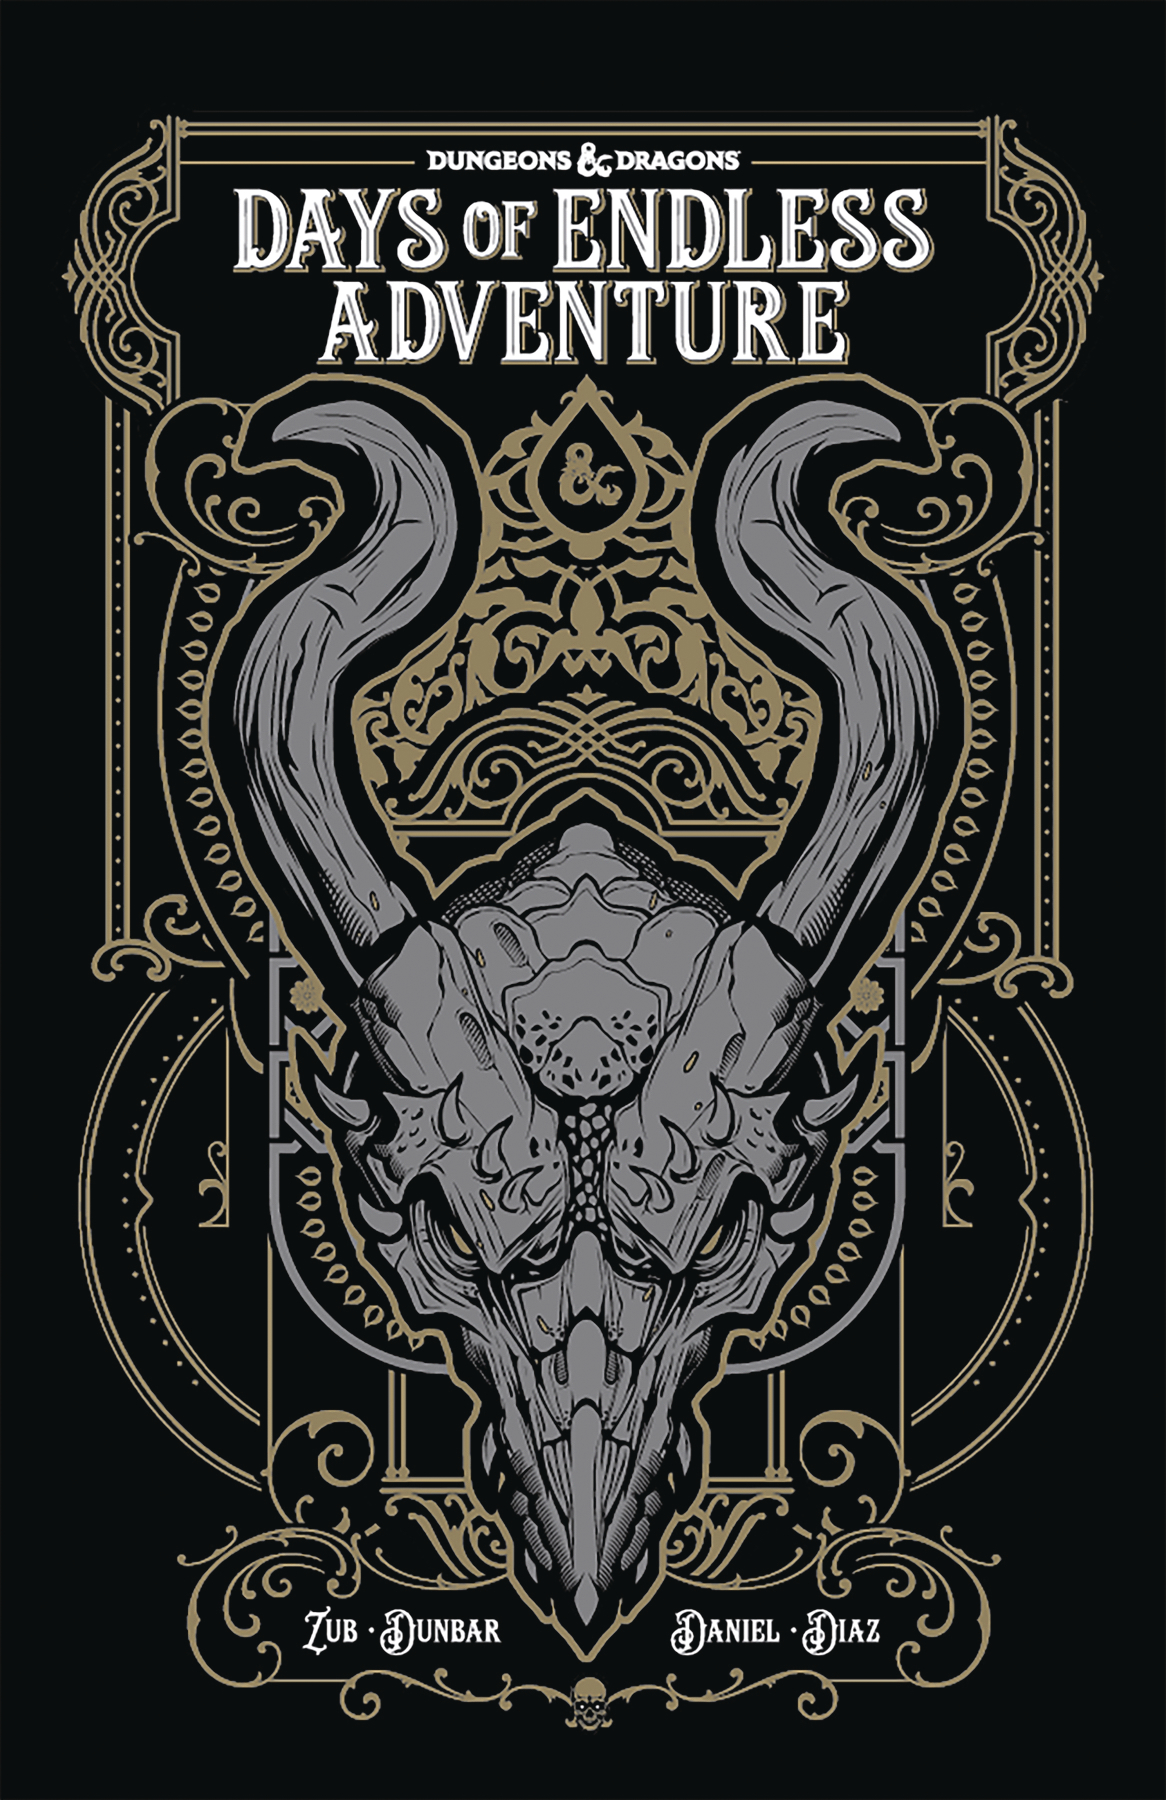 Dungeons & Dragons Days Of Endless Adventure Trade Paperback